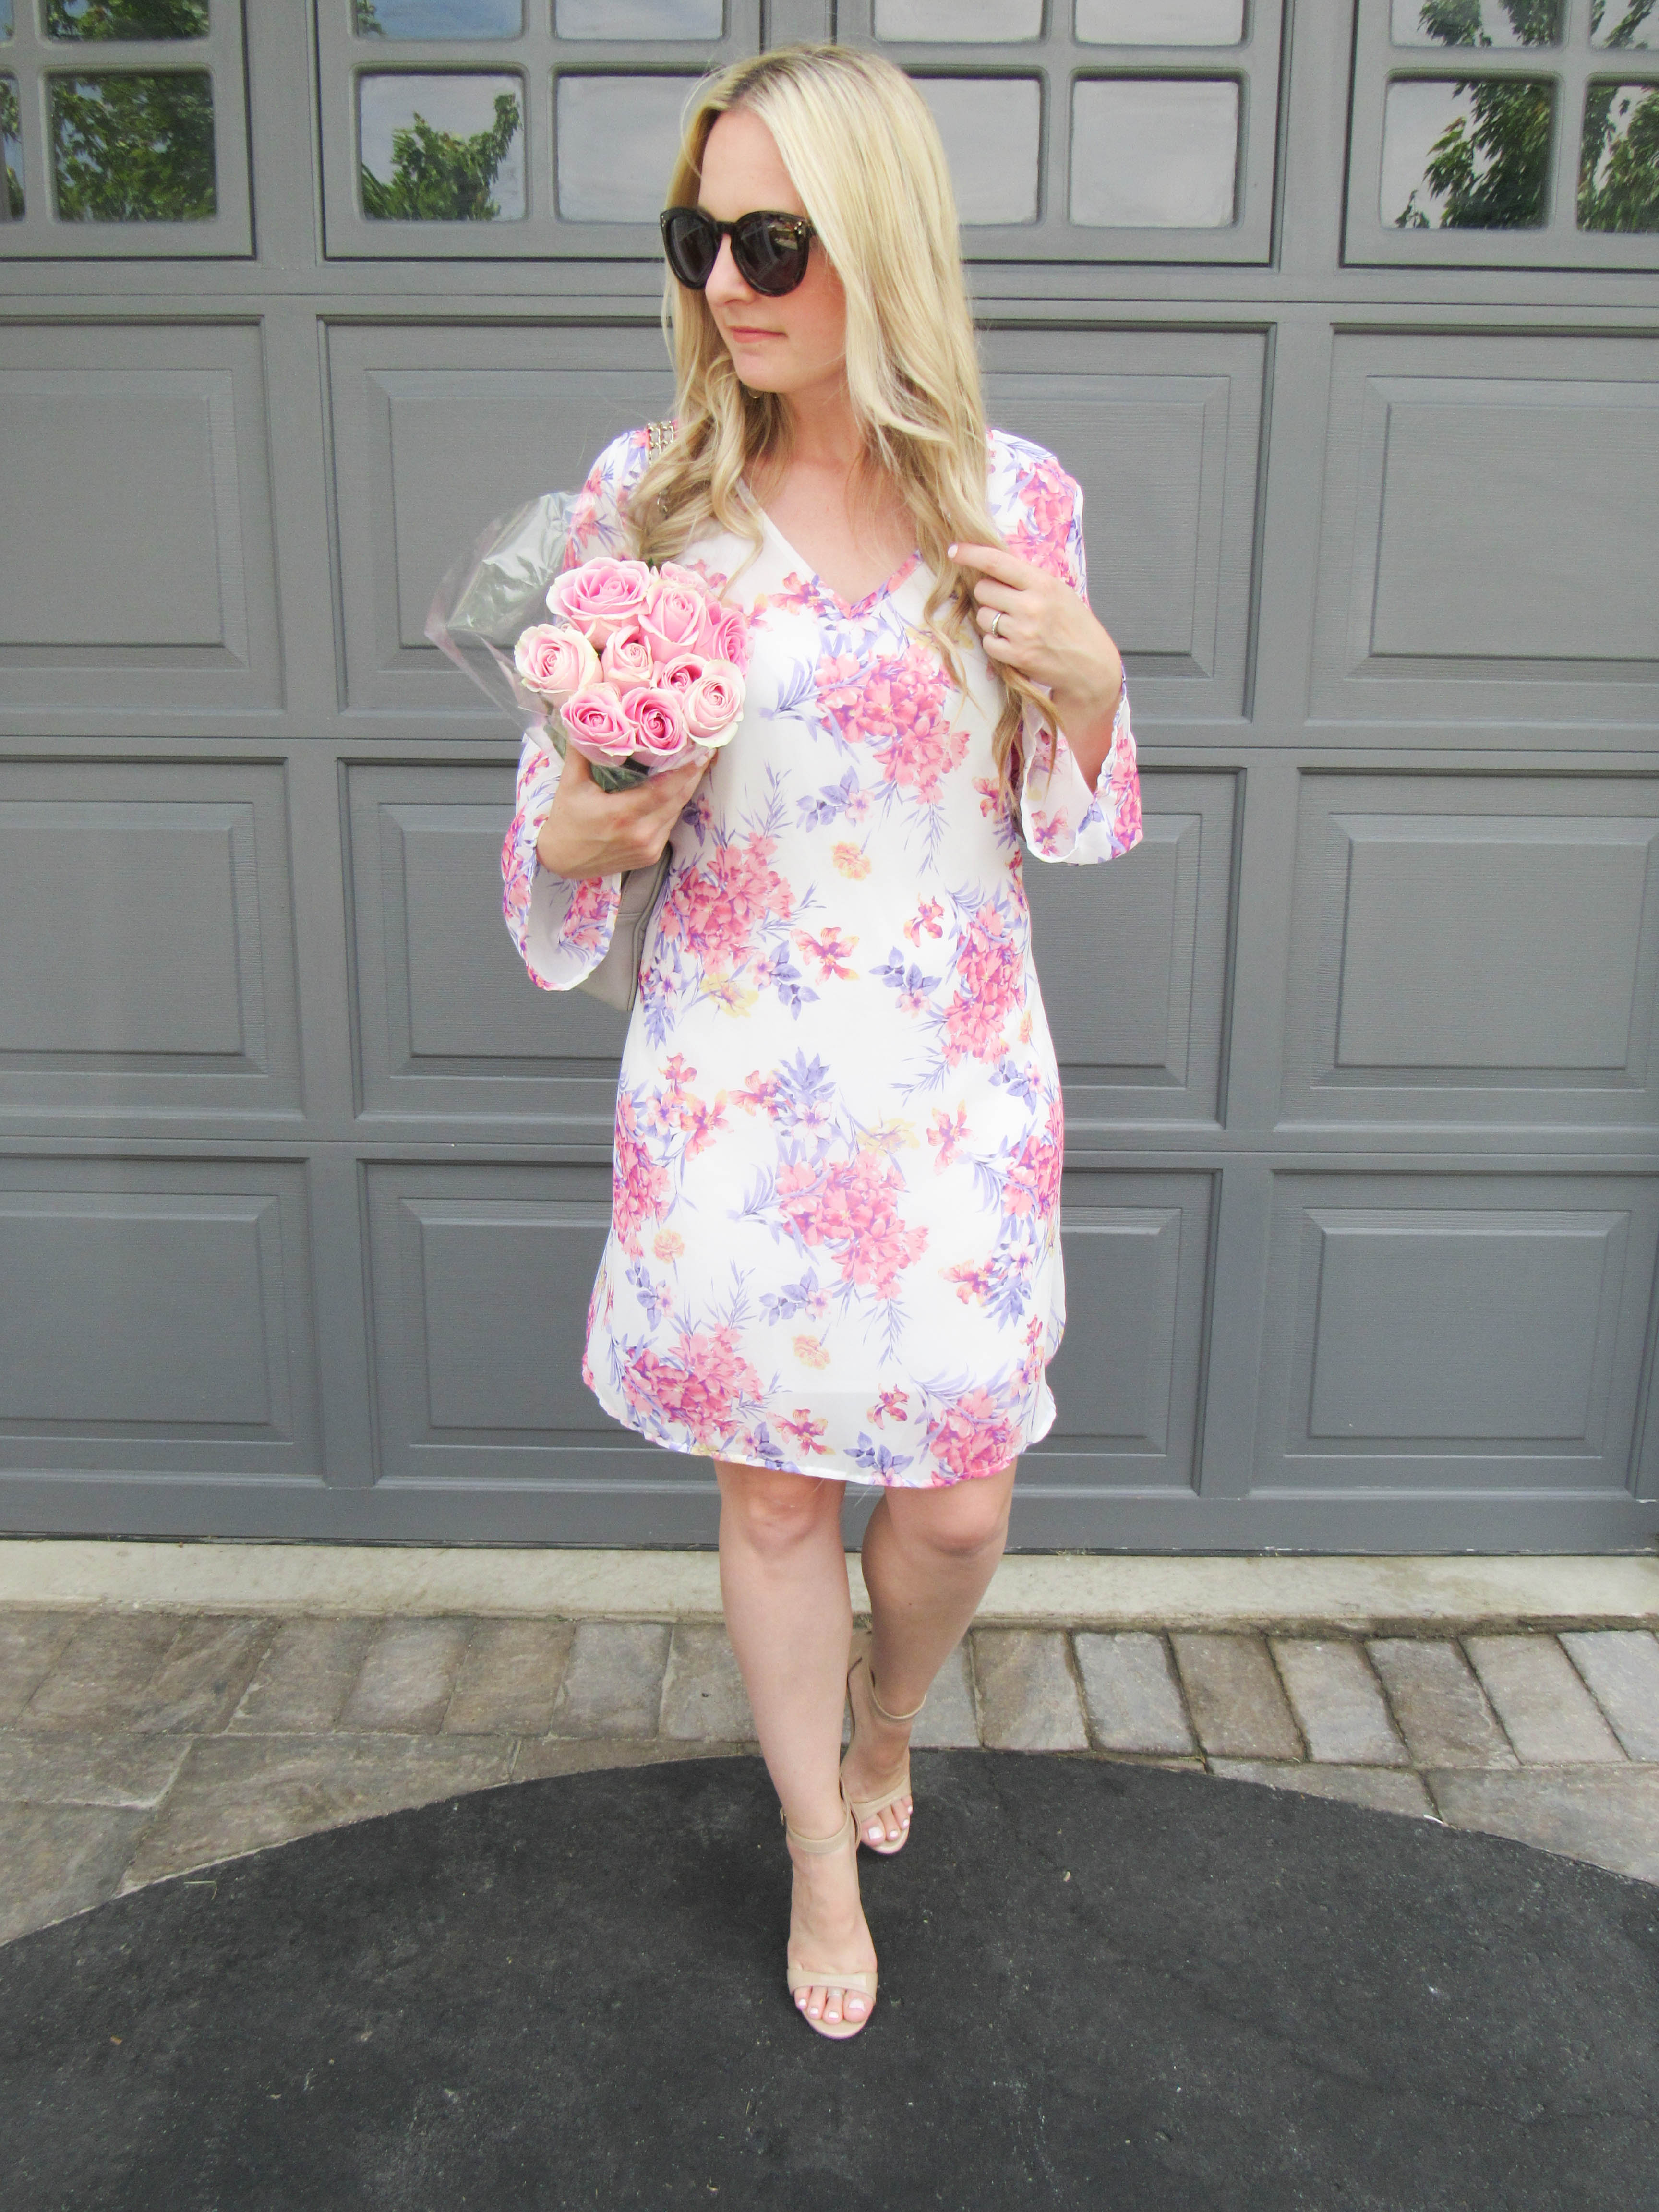 Pink Blush Dress on Livin; Life with Style